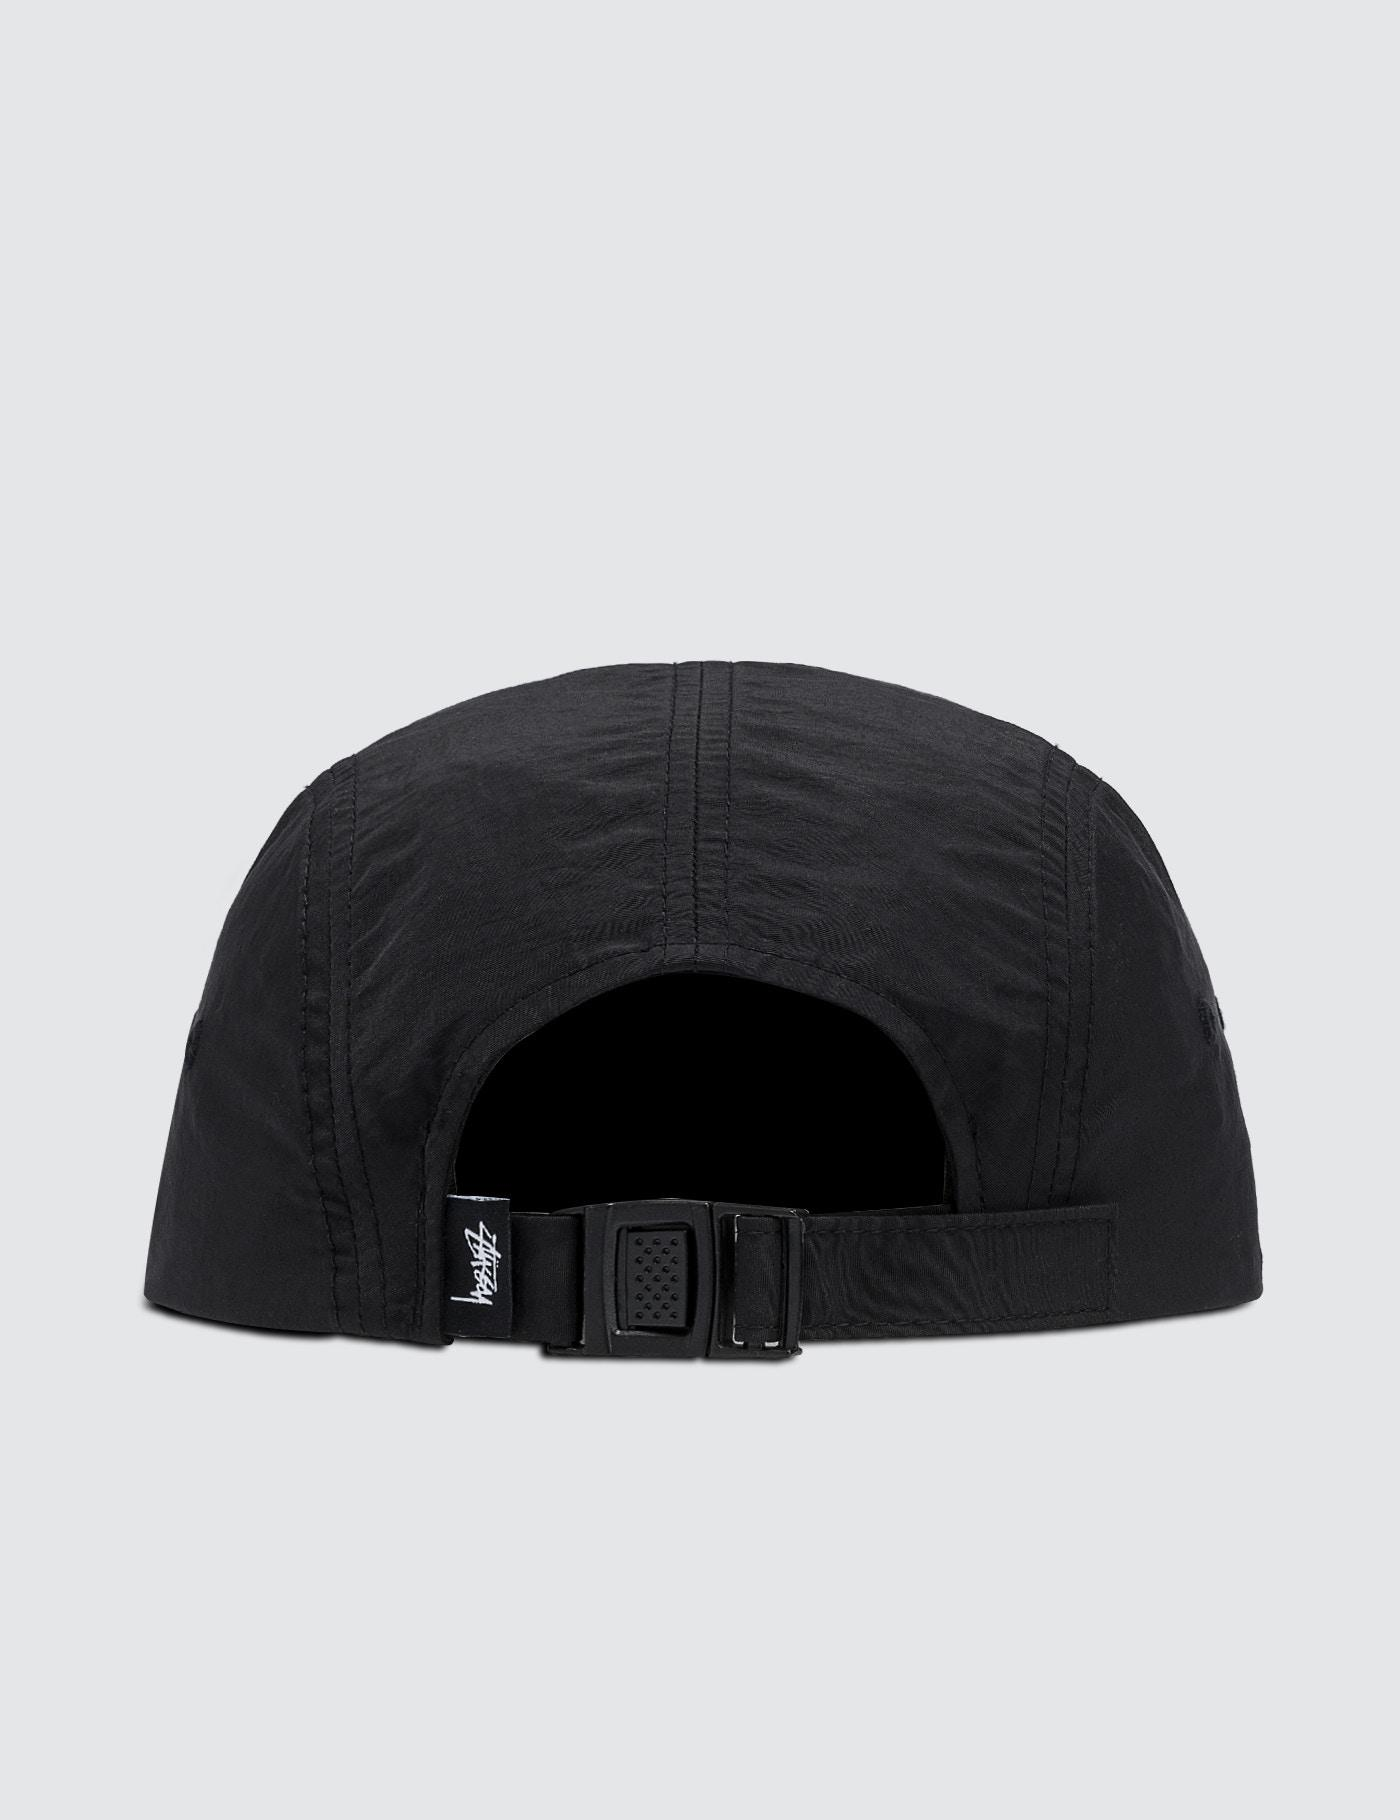 adc882db03534 Stussy 3m Reflective Low Pro Cap in Black for Men - Lyst